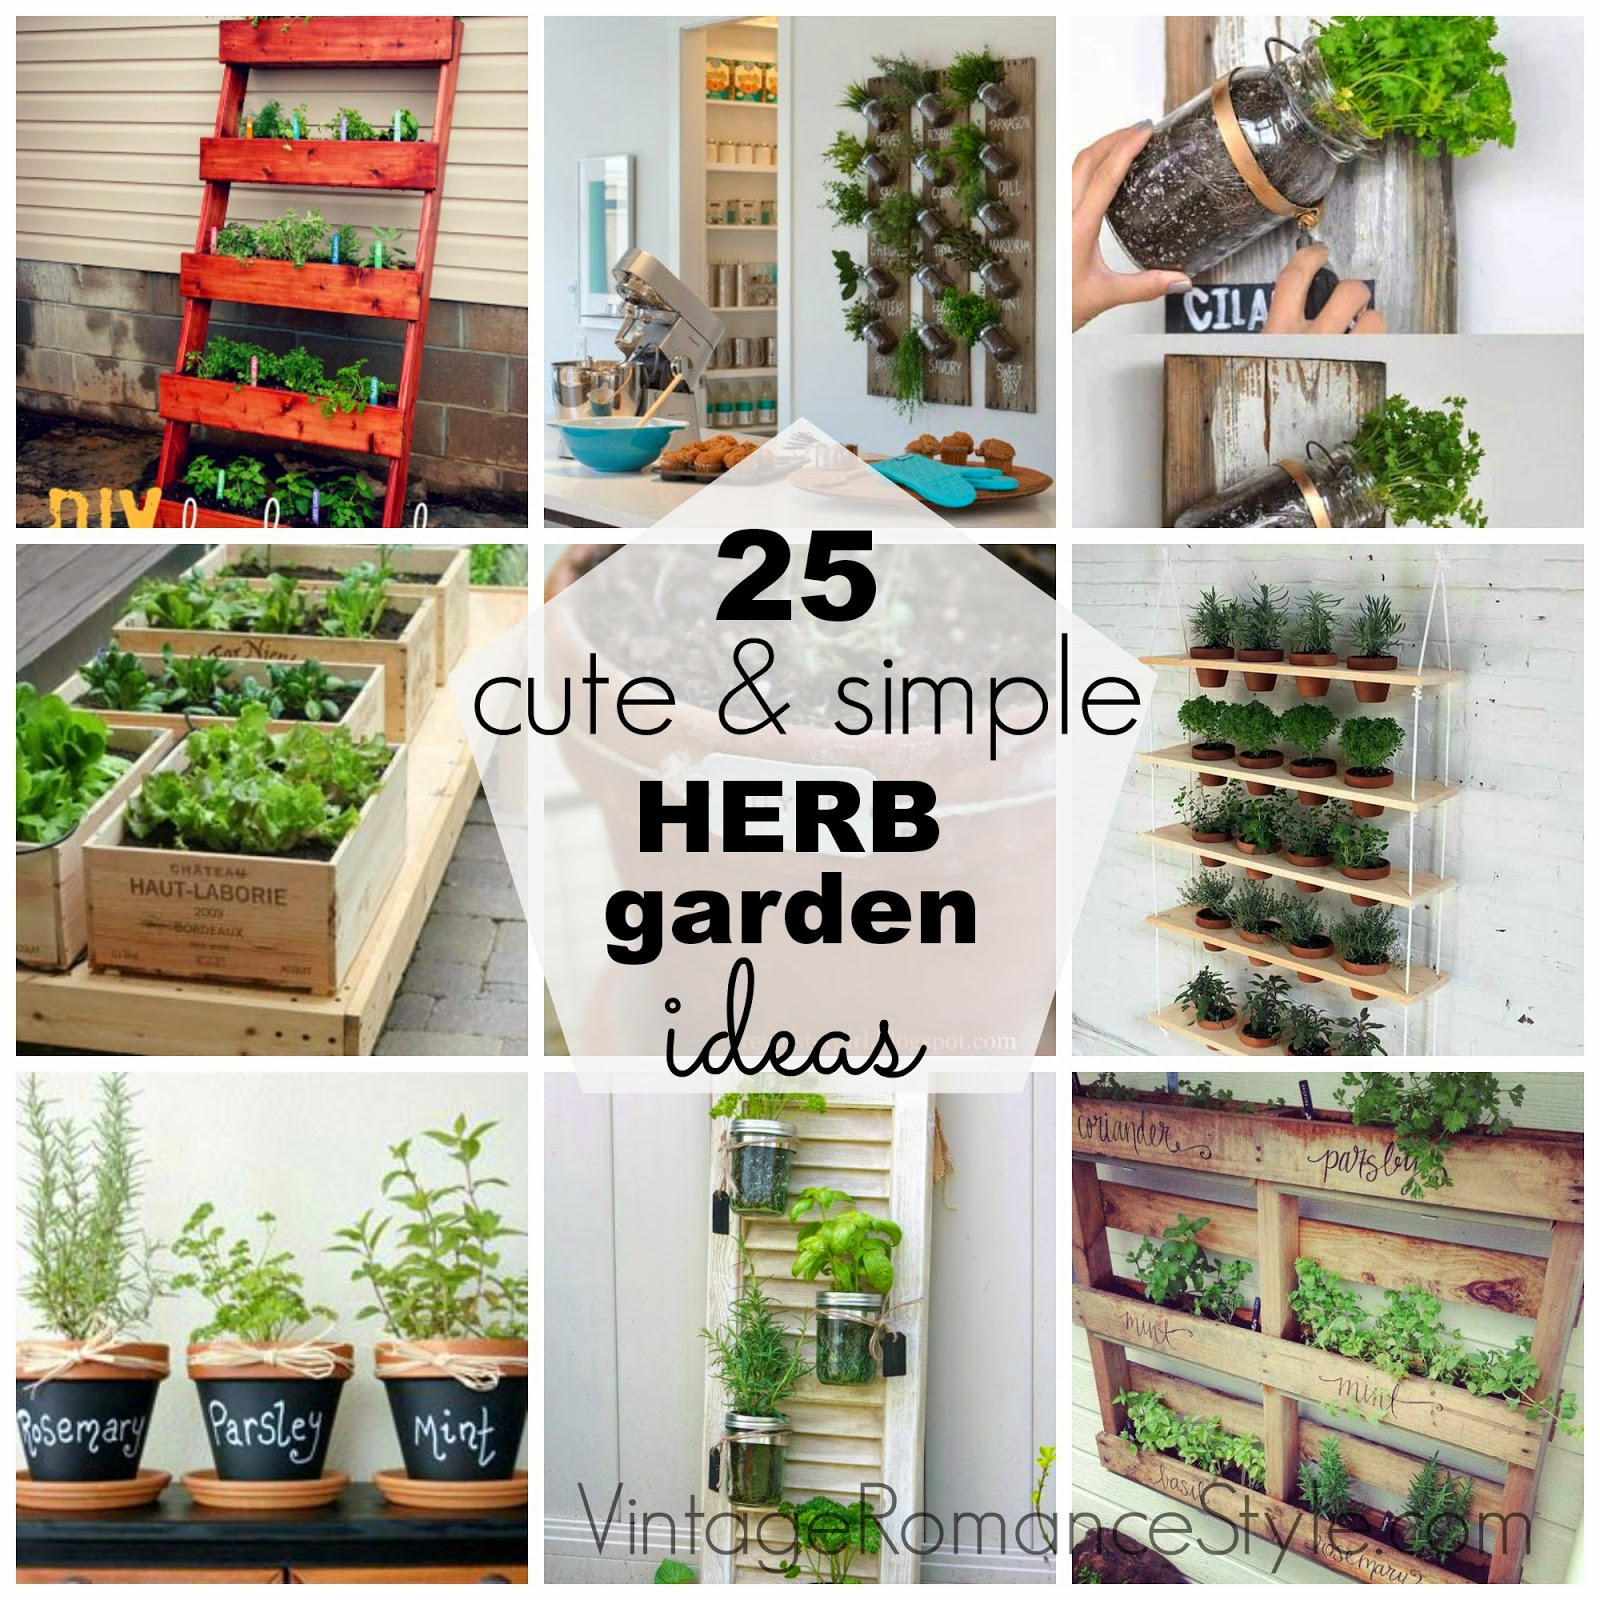 25 cute simple herb garden ideas - Garden Ideas Vintage